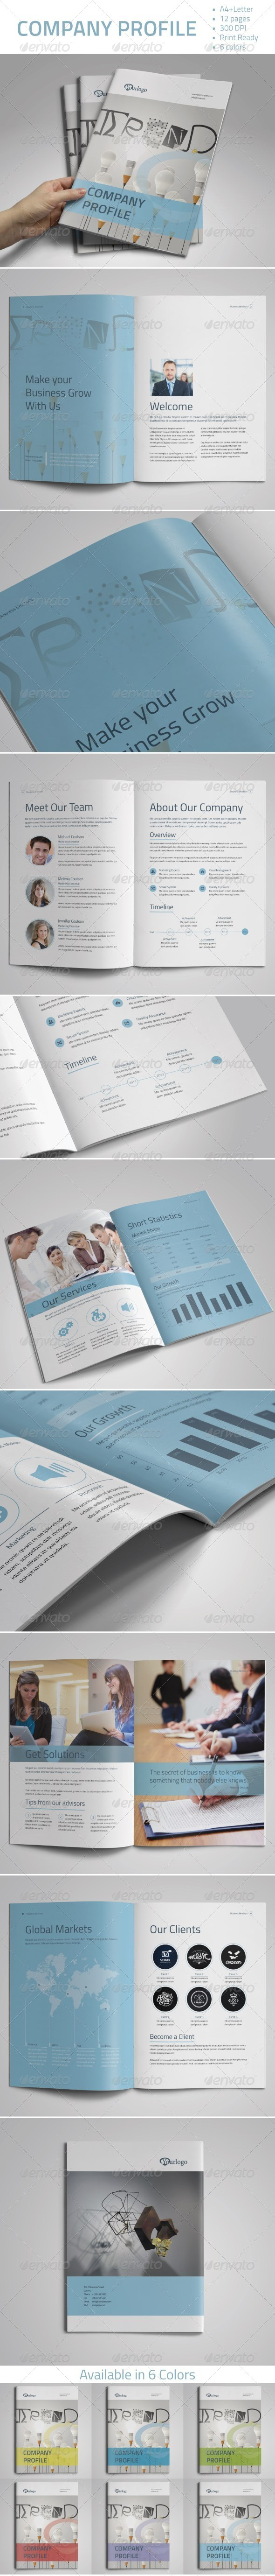 GraphicRiver Company Profile Vol.1 7588393